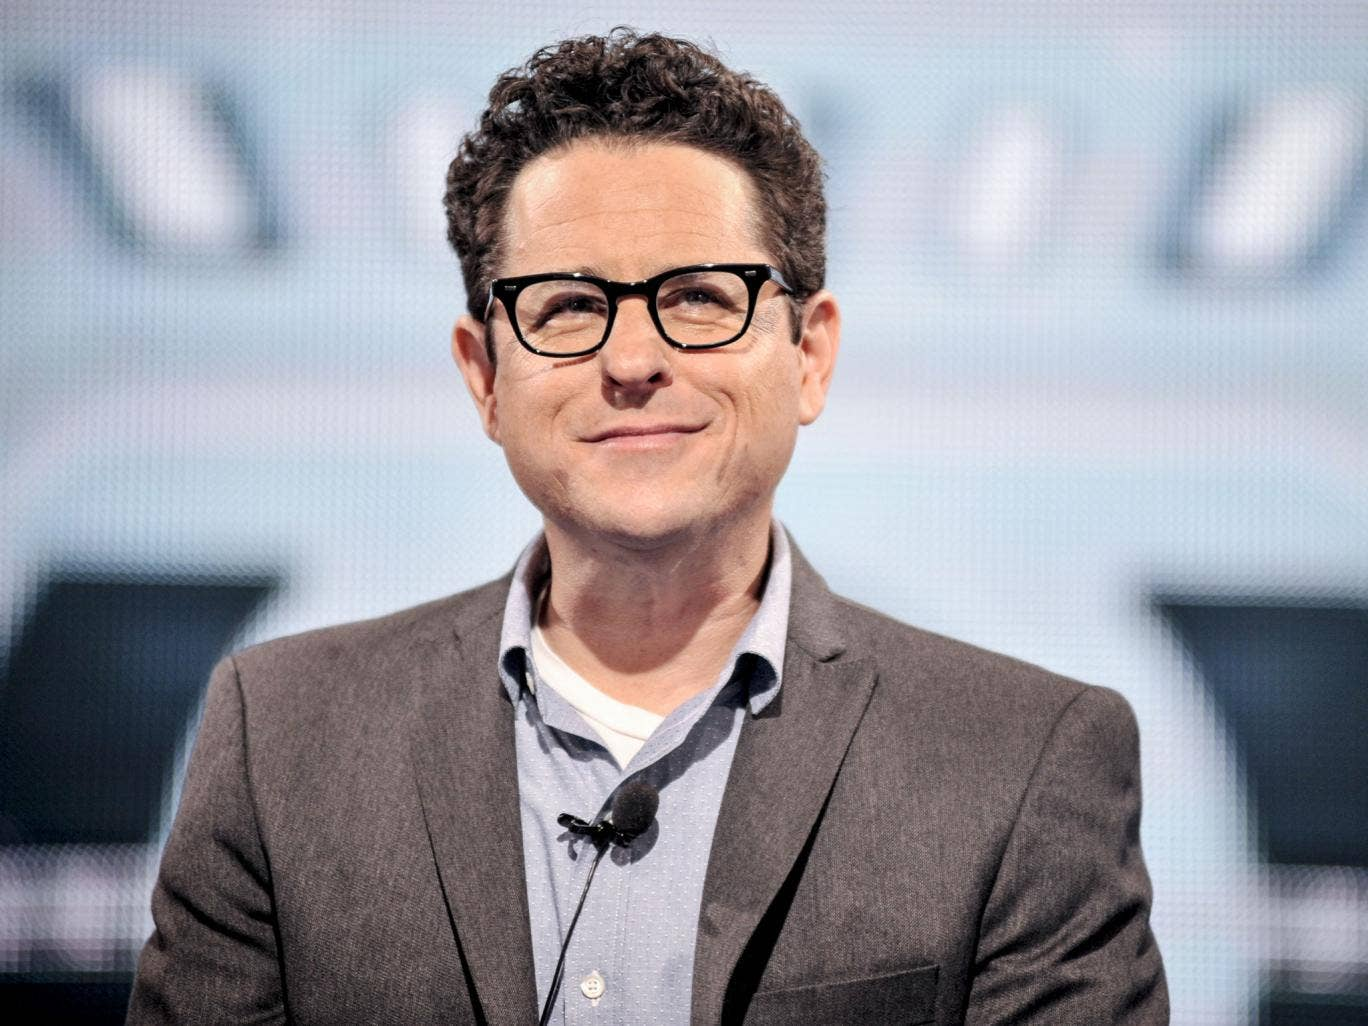 Star Wars: Episode VII, directed by JJ Abrams, will be released in December 2015